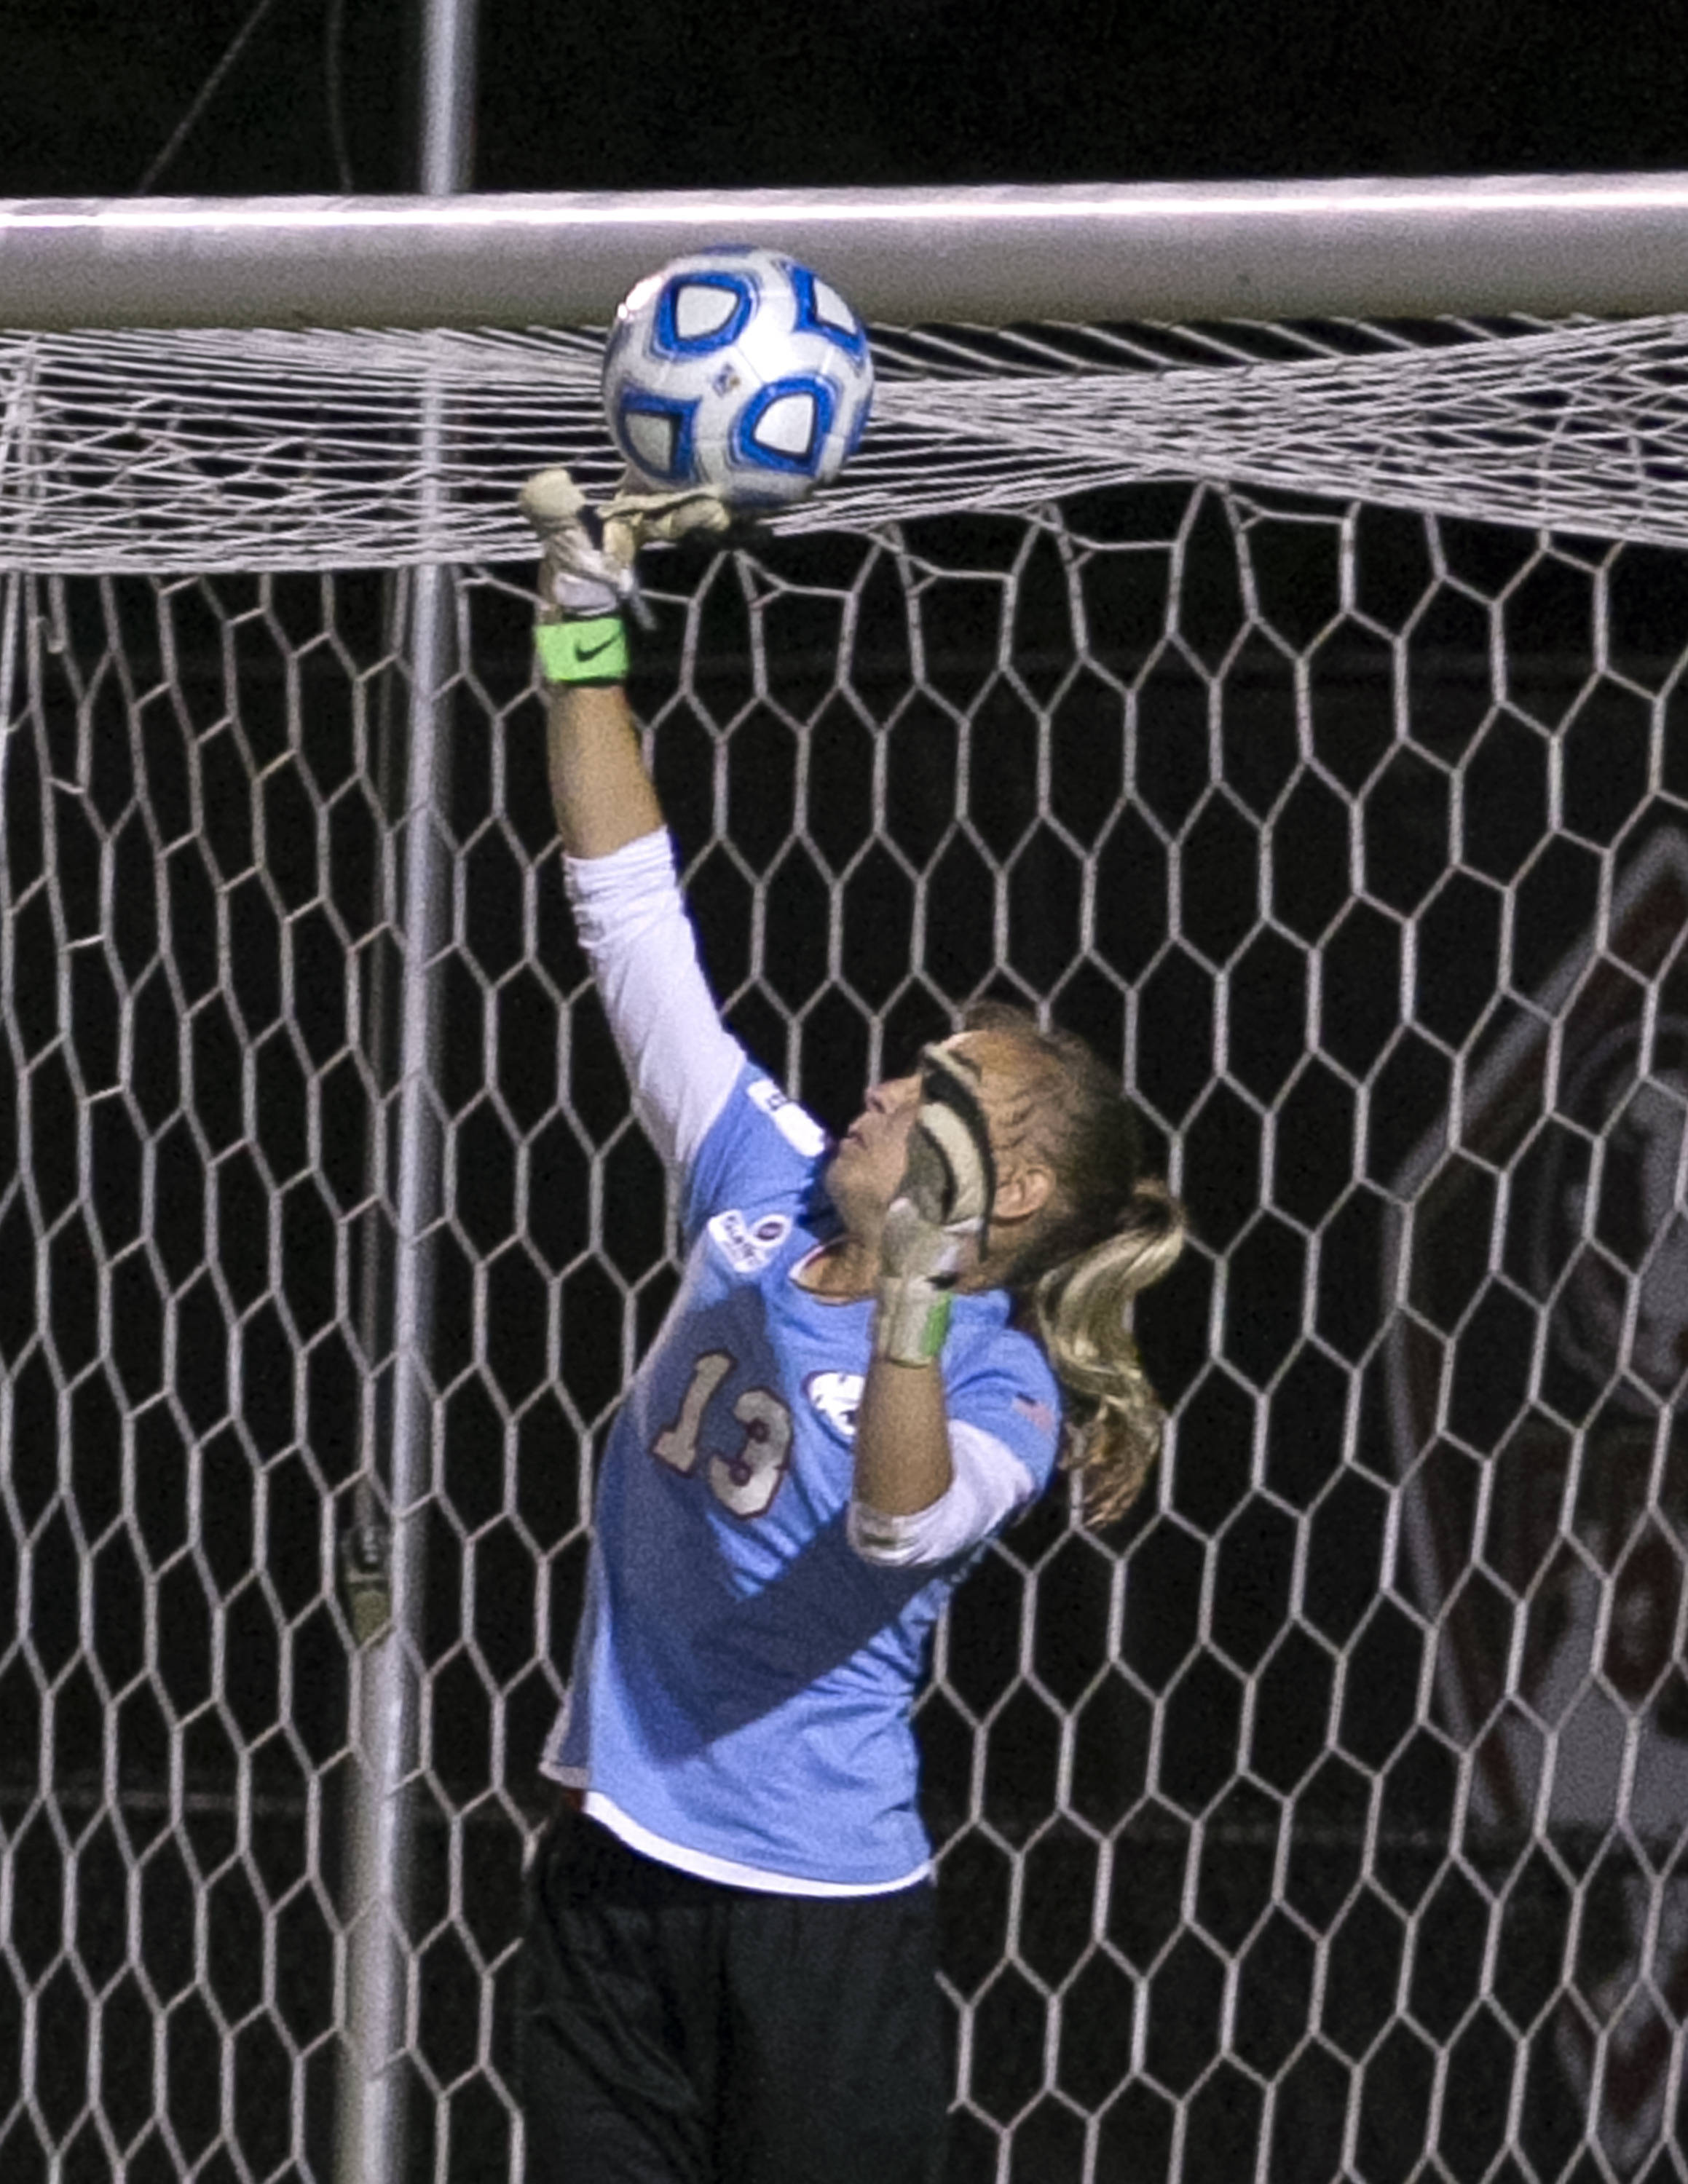 Megan Campbell's long throw-in goal just over the South Alabama's reach. FSU vs University of South Alabama,  NCAA Tournament, 11-15-13, (Photo by Steve Musco)